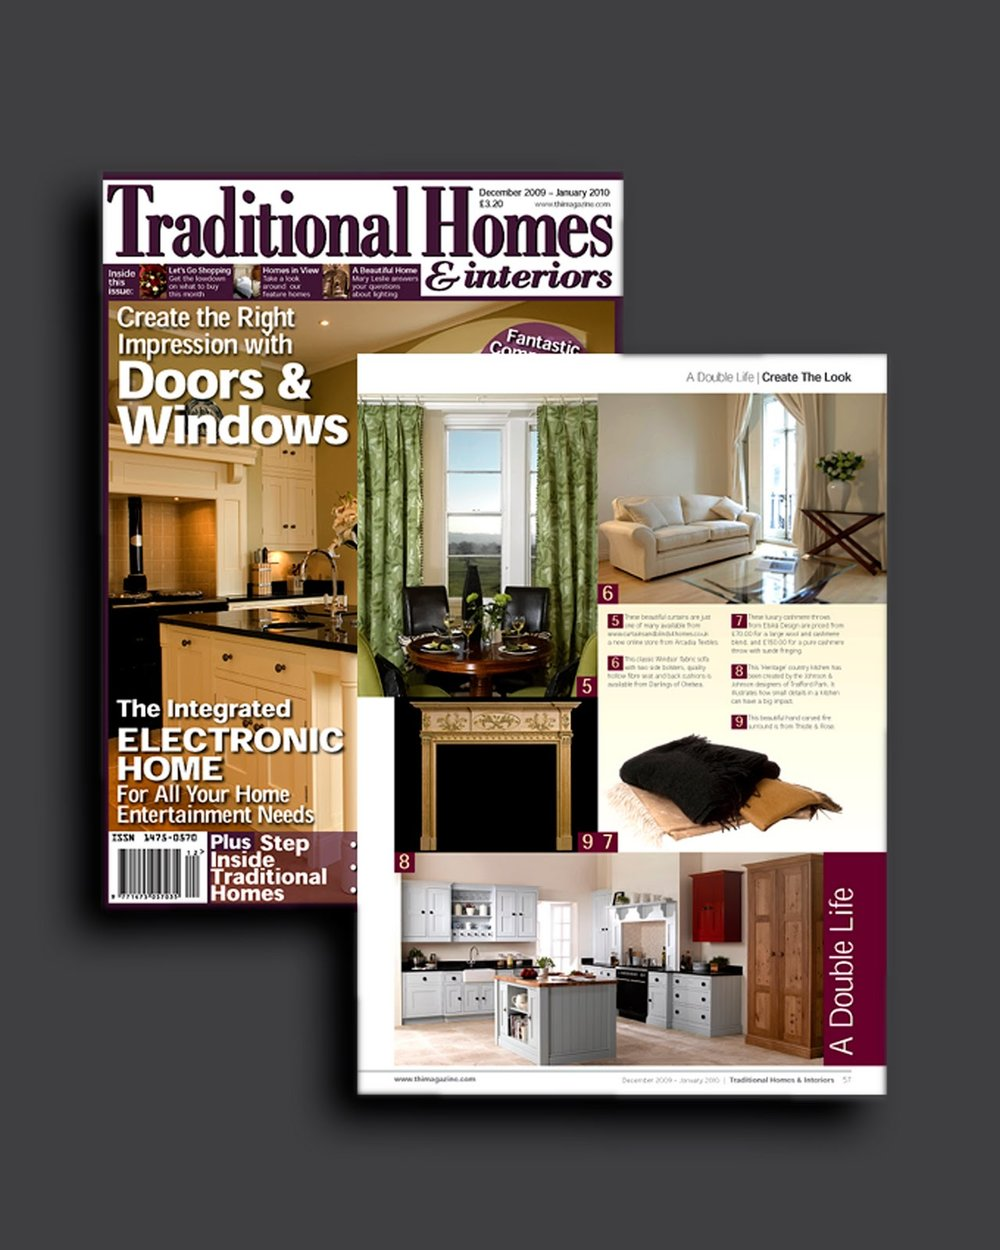 Traditional Homes & Interiors December 2009 - January 2010 Traditional Homes & Interiors December 2009 - January 2010